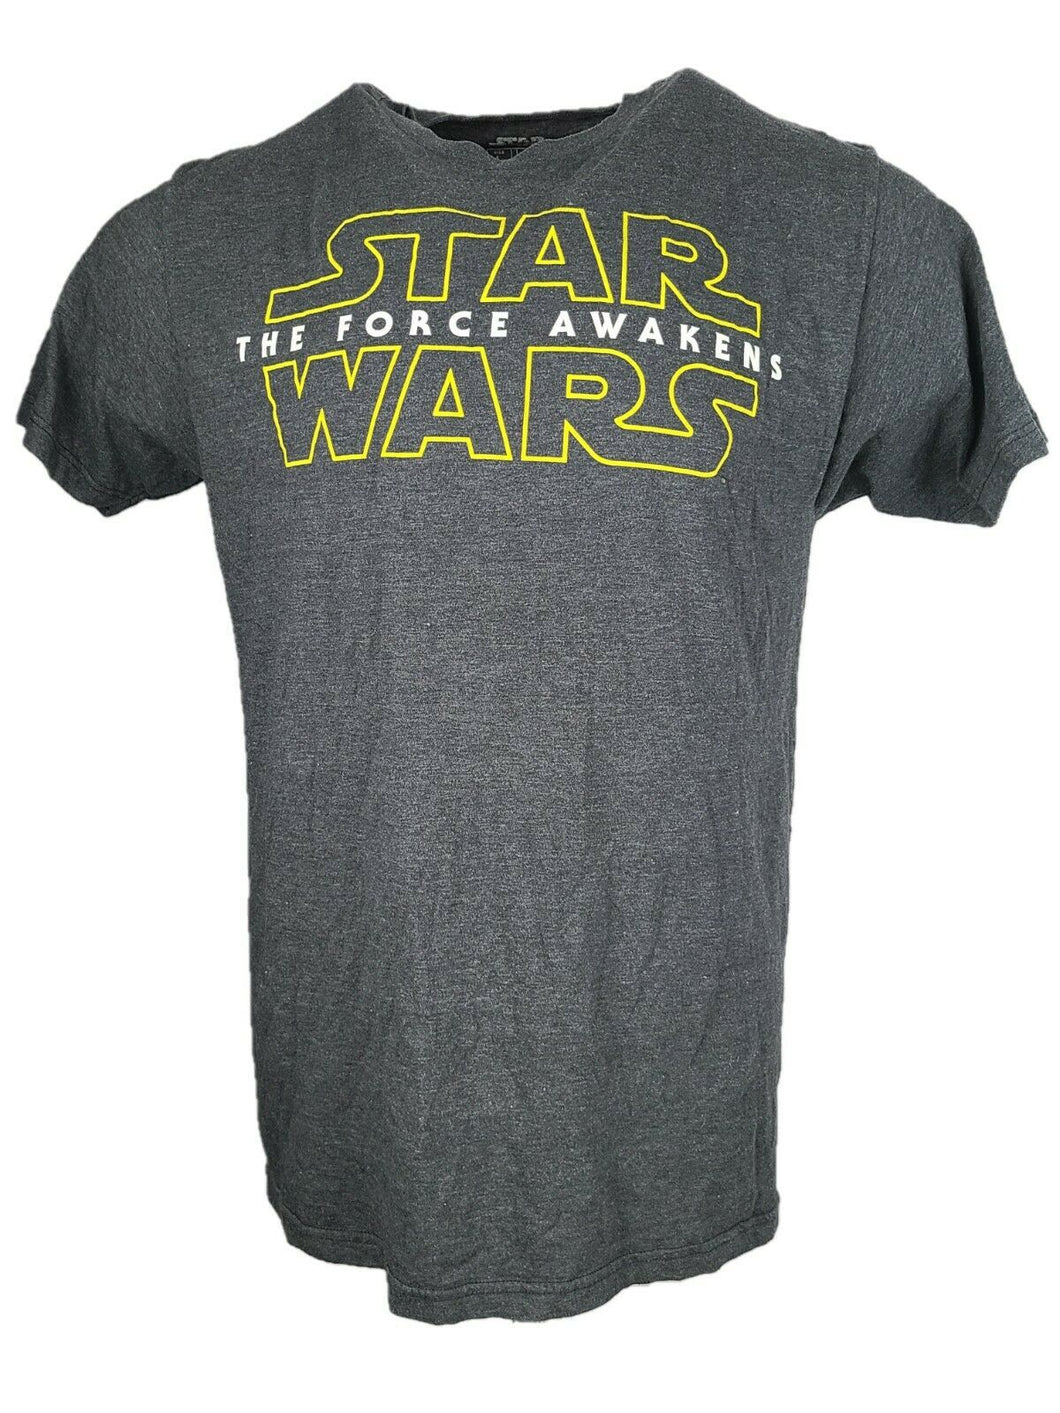 Star Wars Graphic T Shirt  Crew Neck Black Size Large